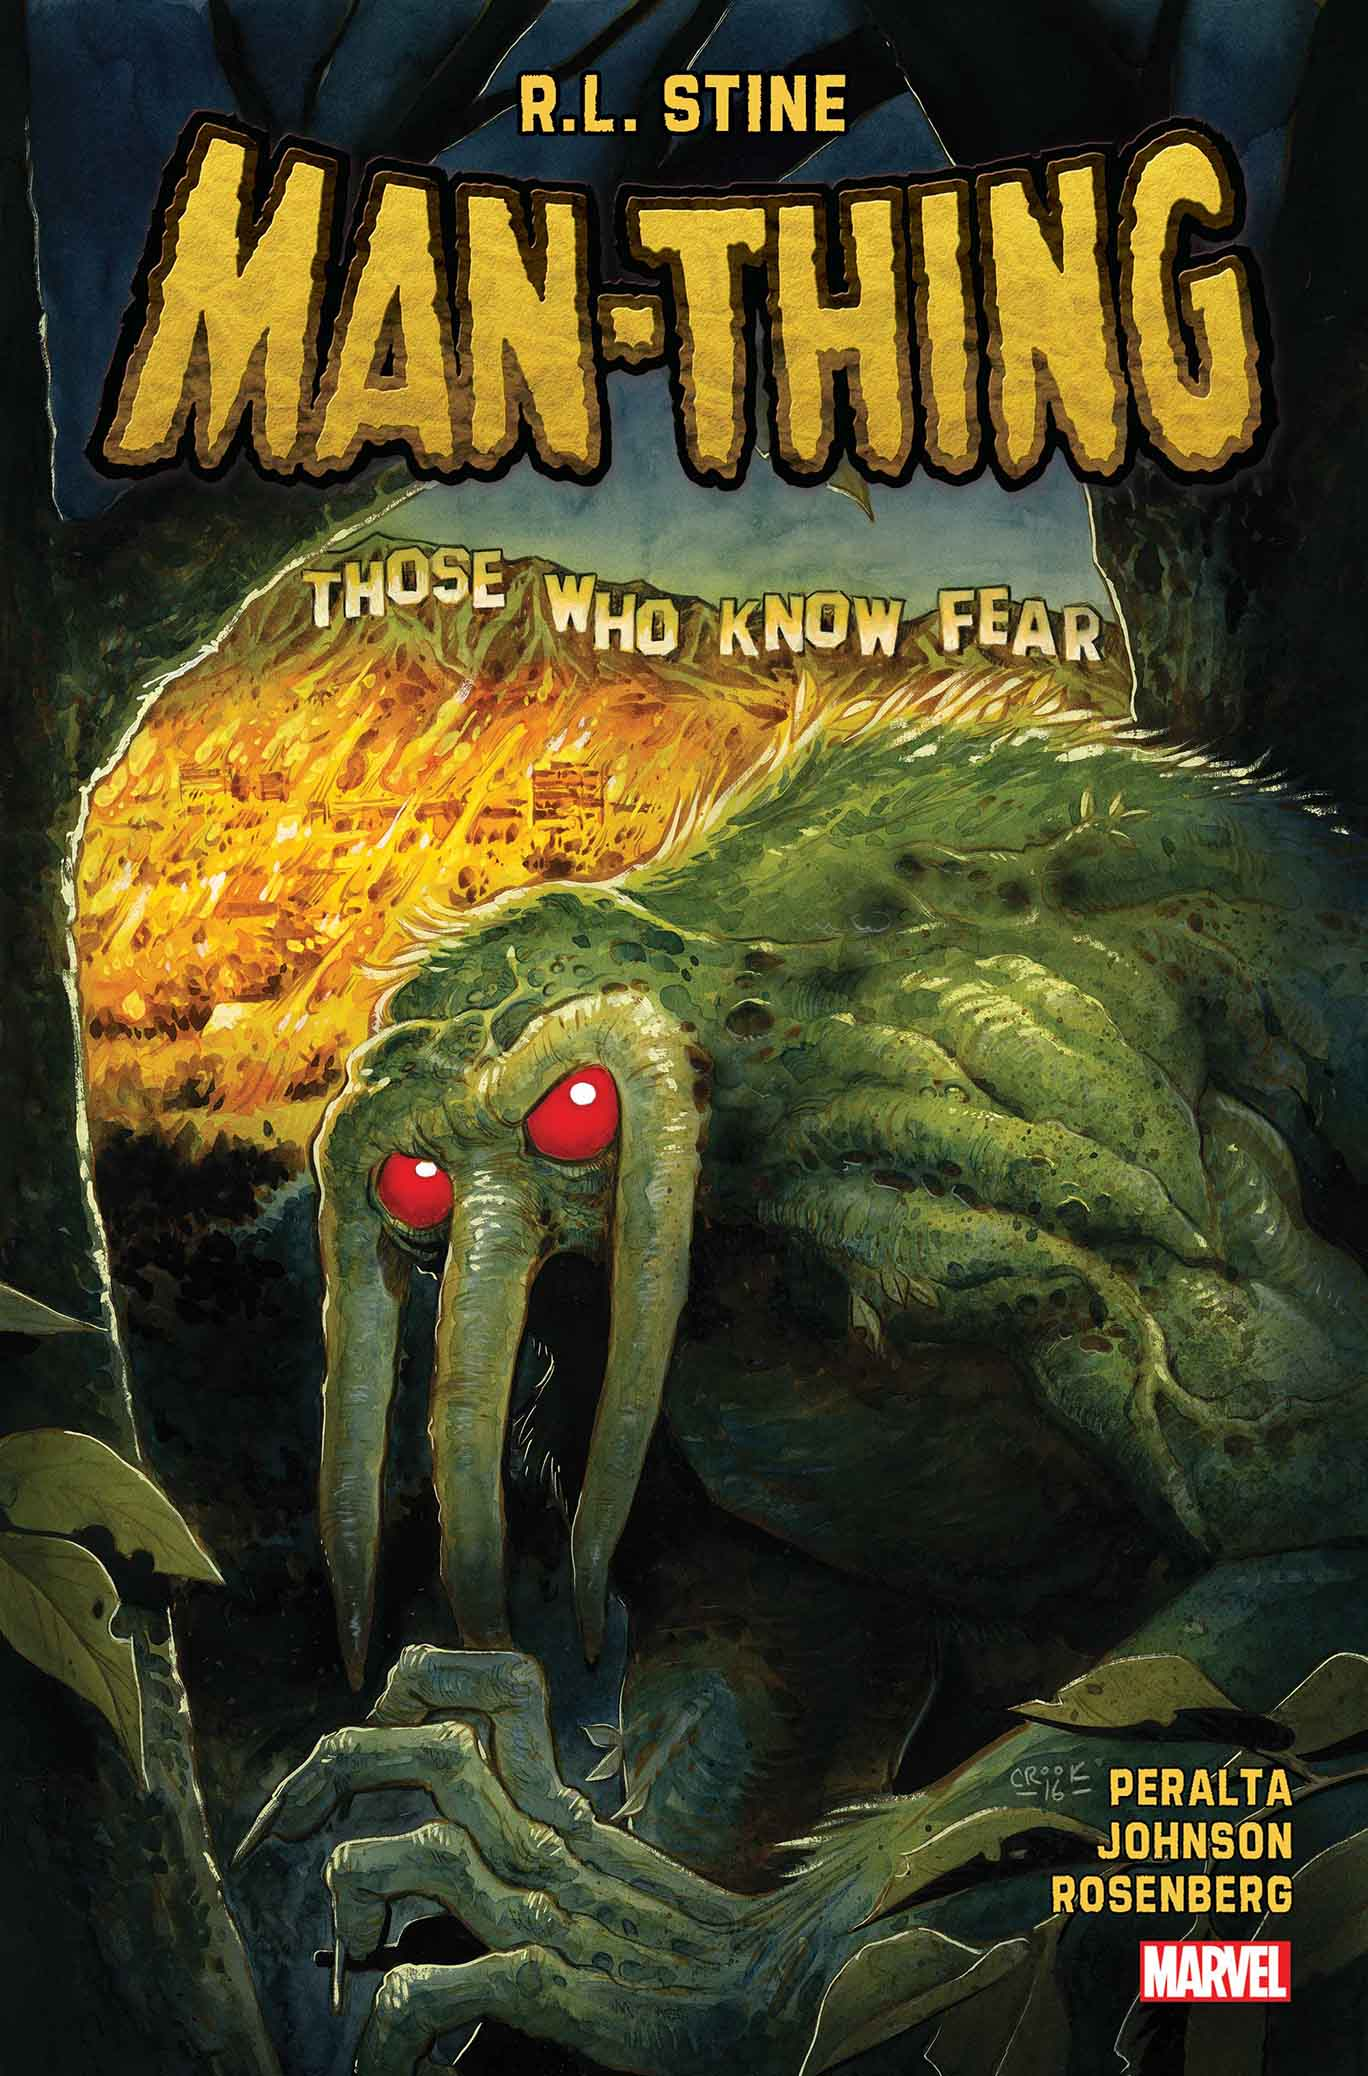 Marvel Preview: R.L. Stine's Man-Thing #1